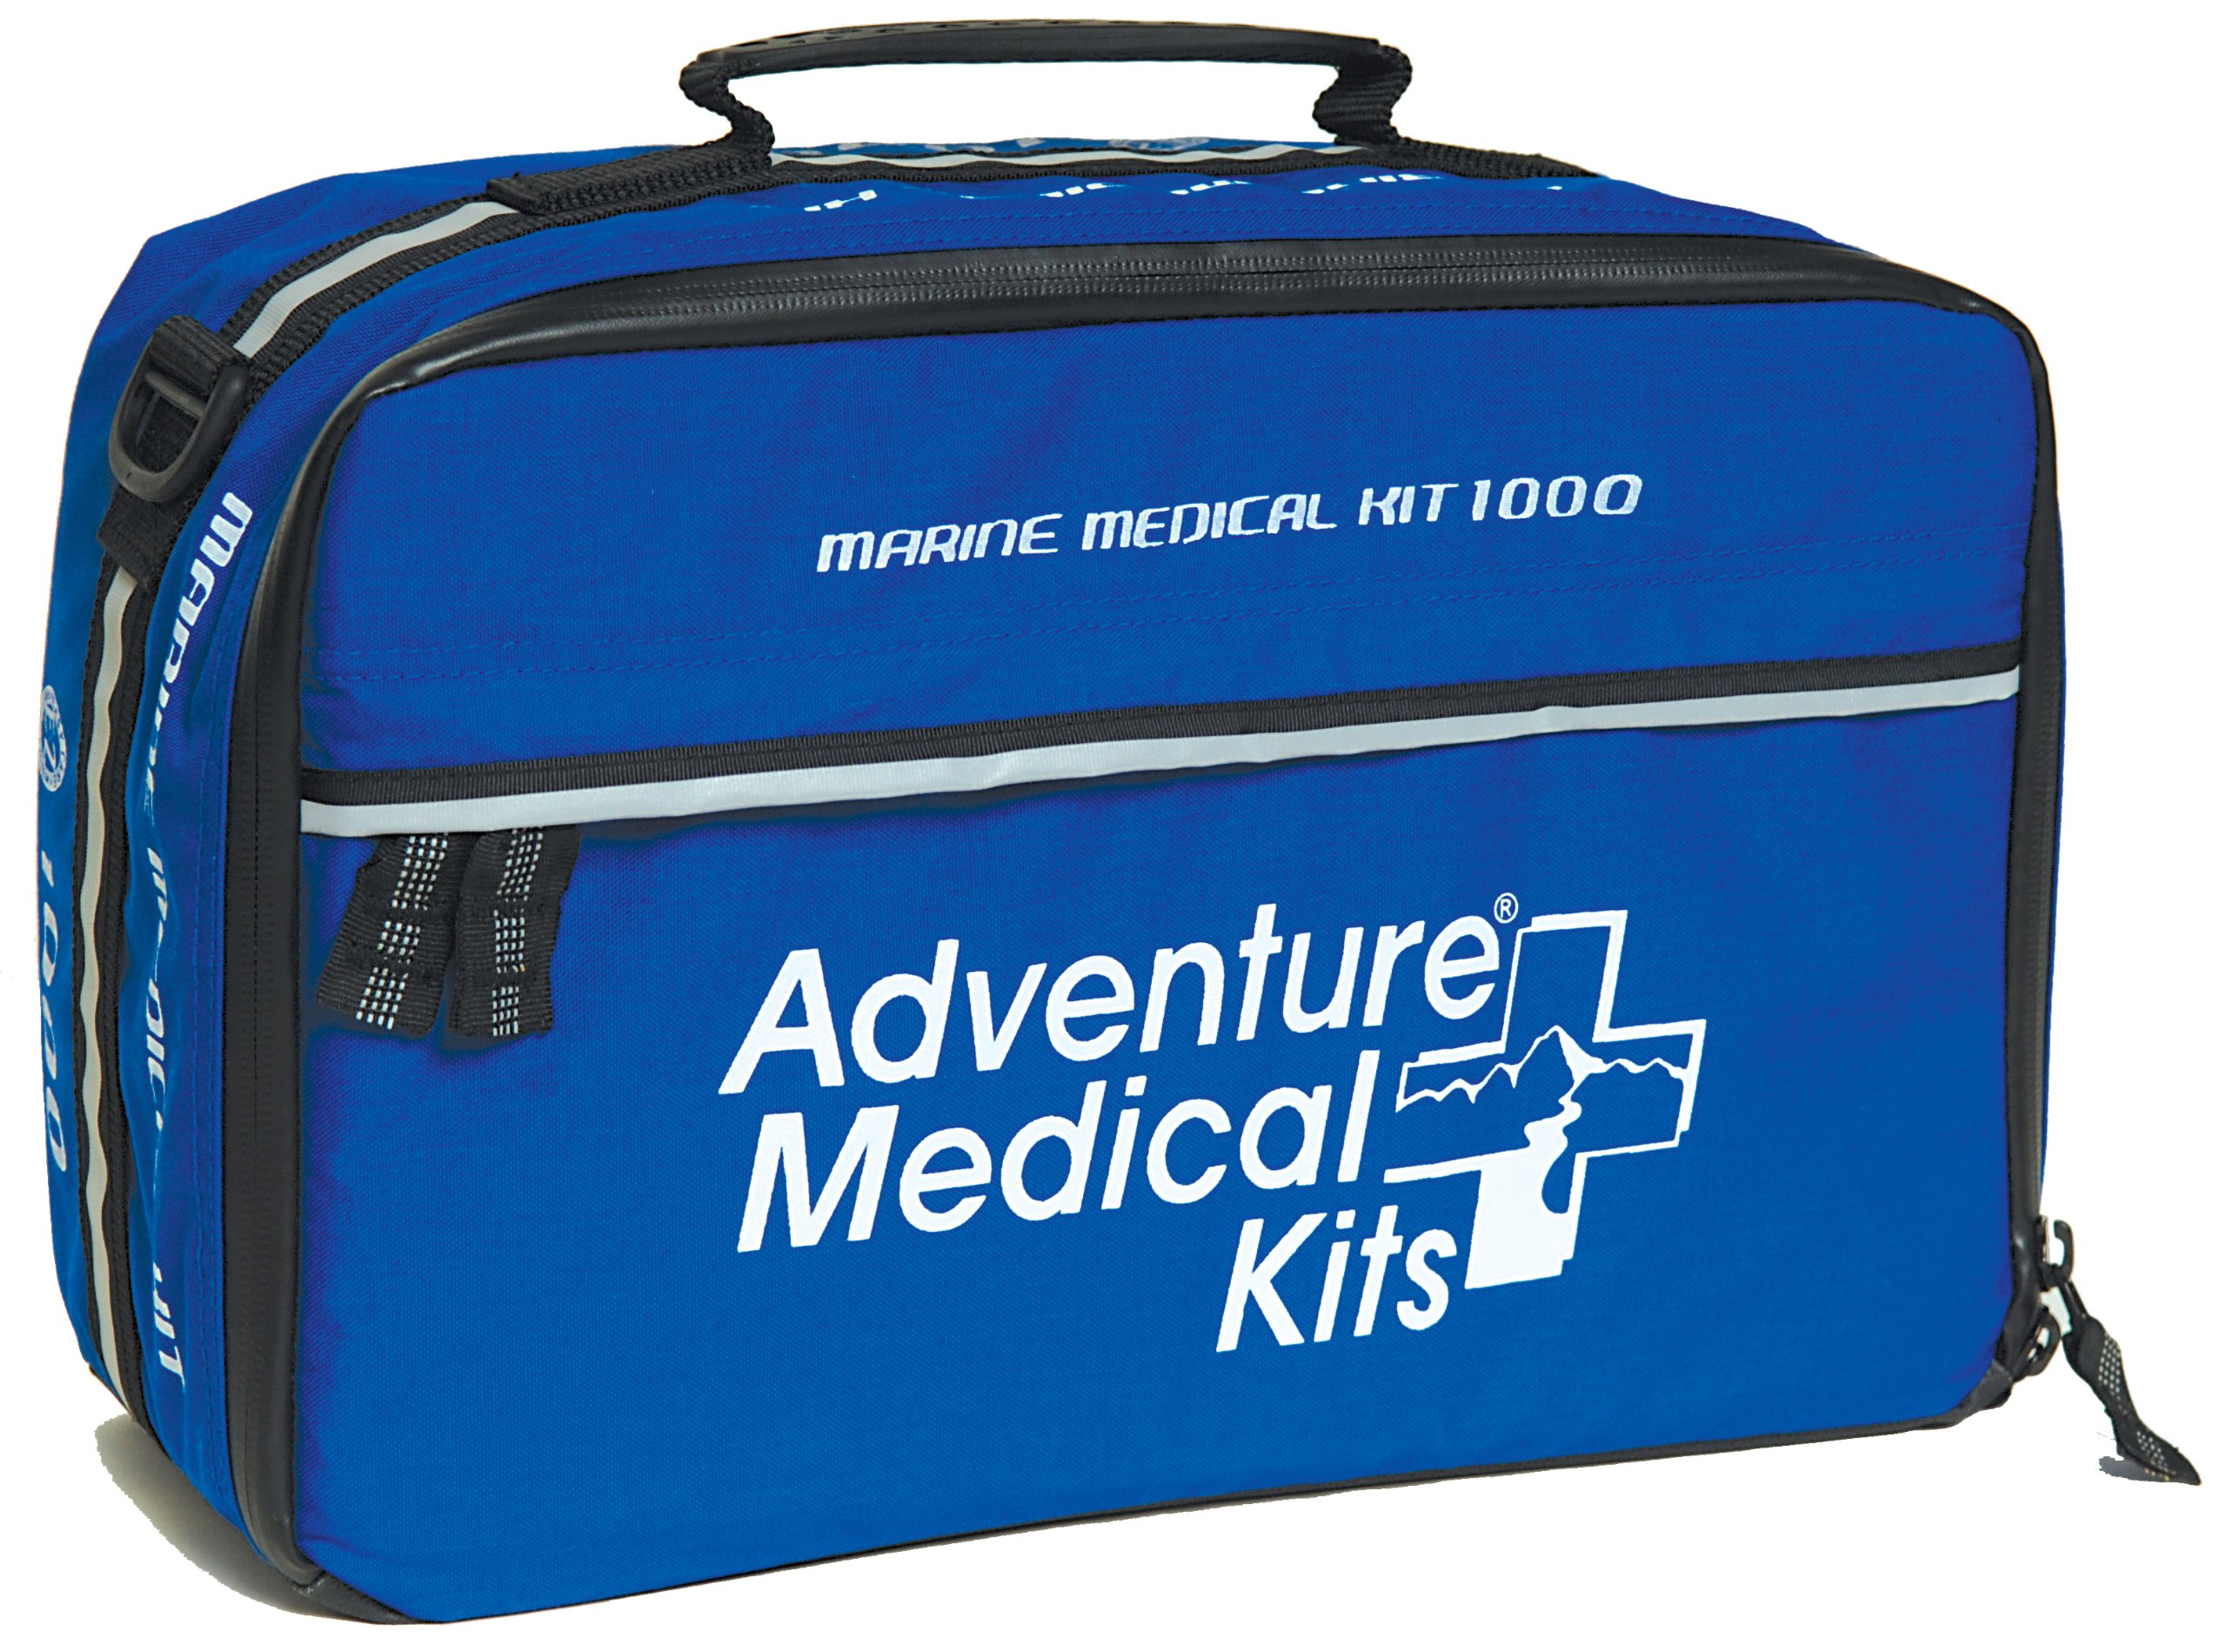 Adventure Medical Kits Marine 1000 First Aid Kit